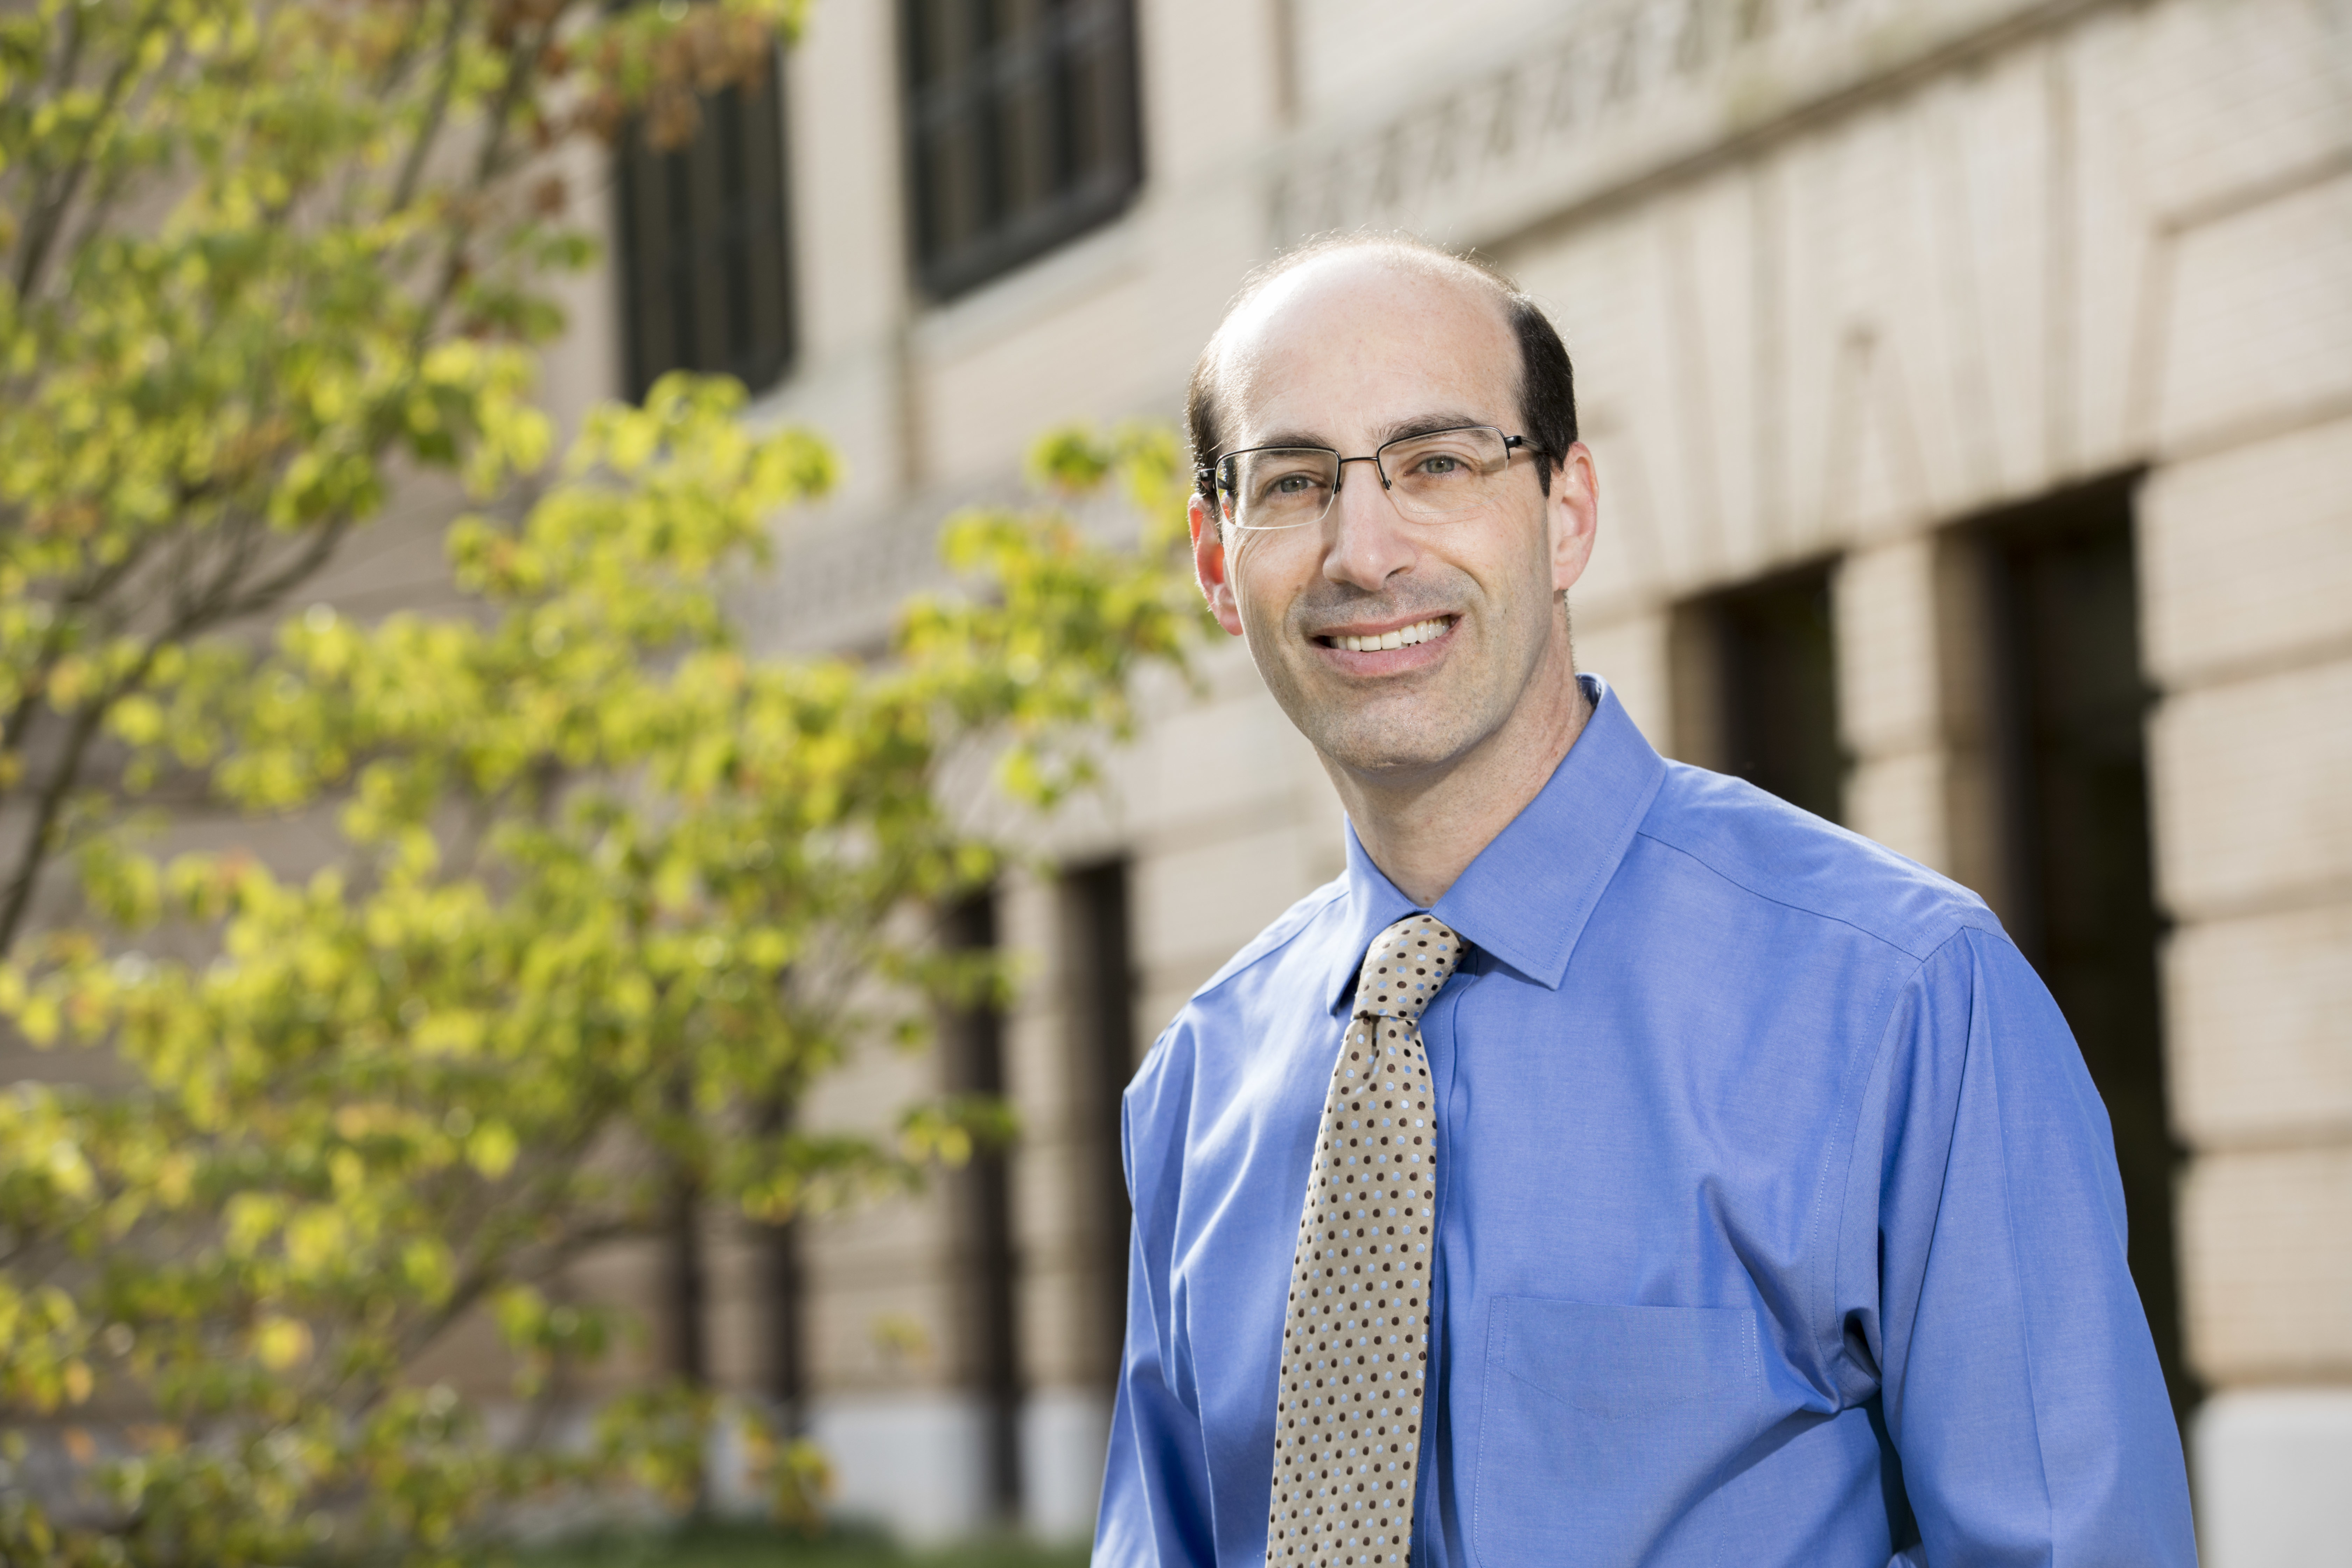 Jeffrey Dorfman currently serves as the state fiscal economist for the state of Georgia and a professor of agricultural economics at the University of Georgia.